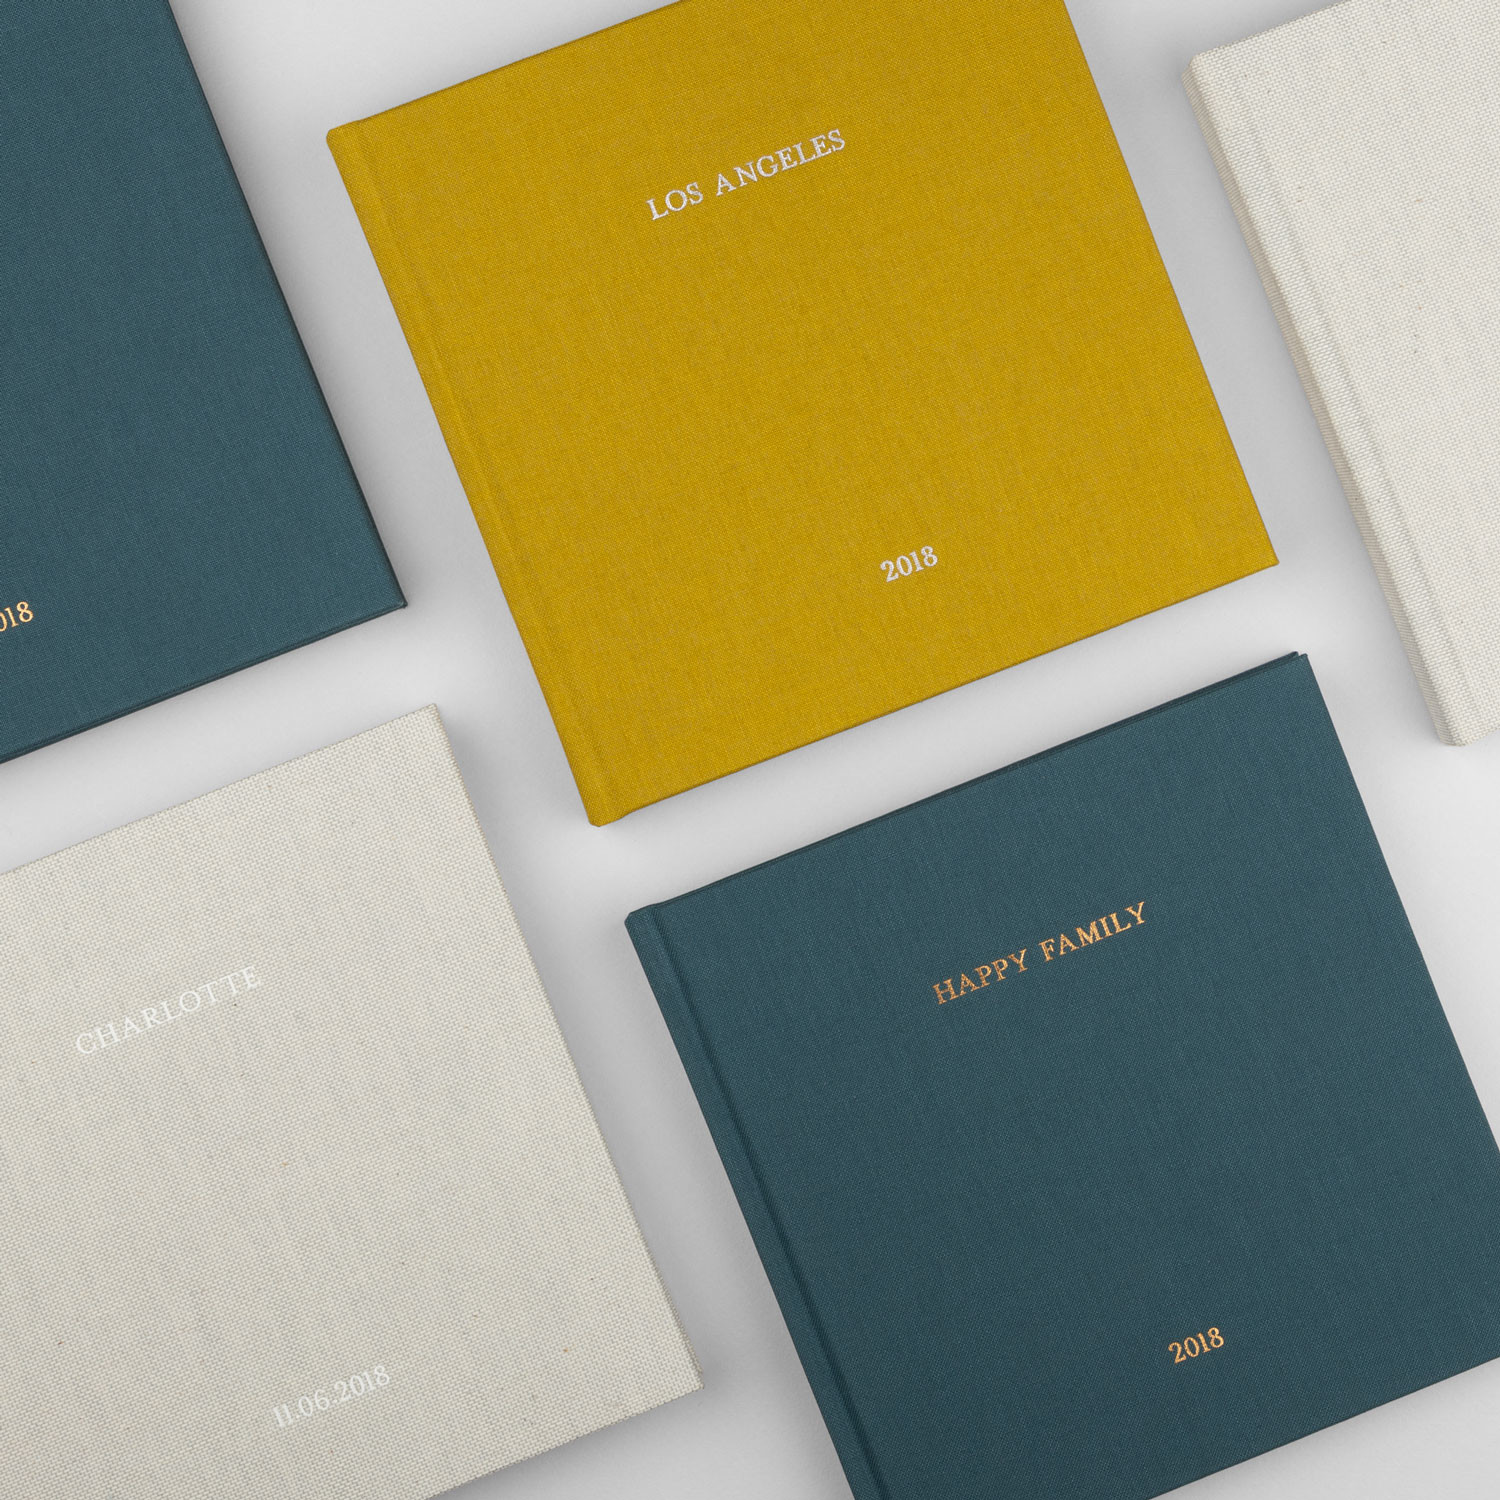 Fabric Hardcover Photo Book Covers